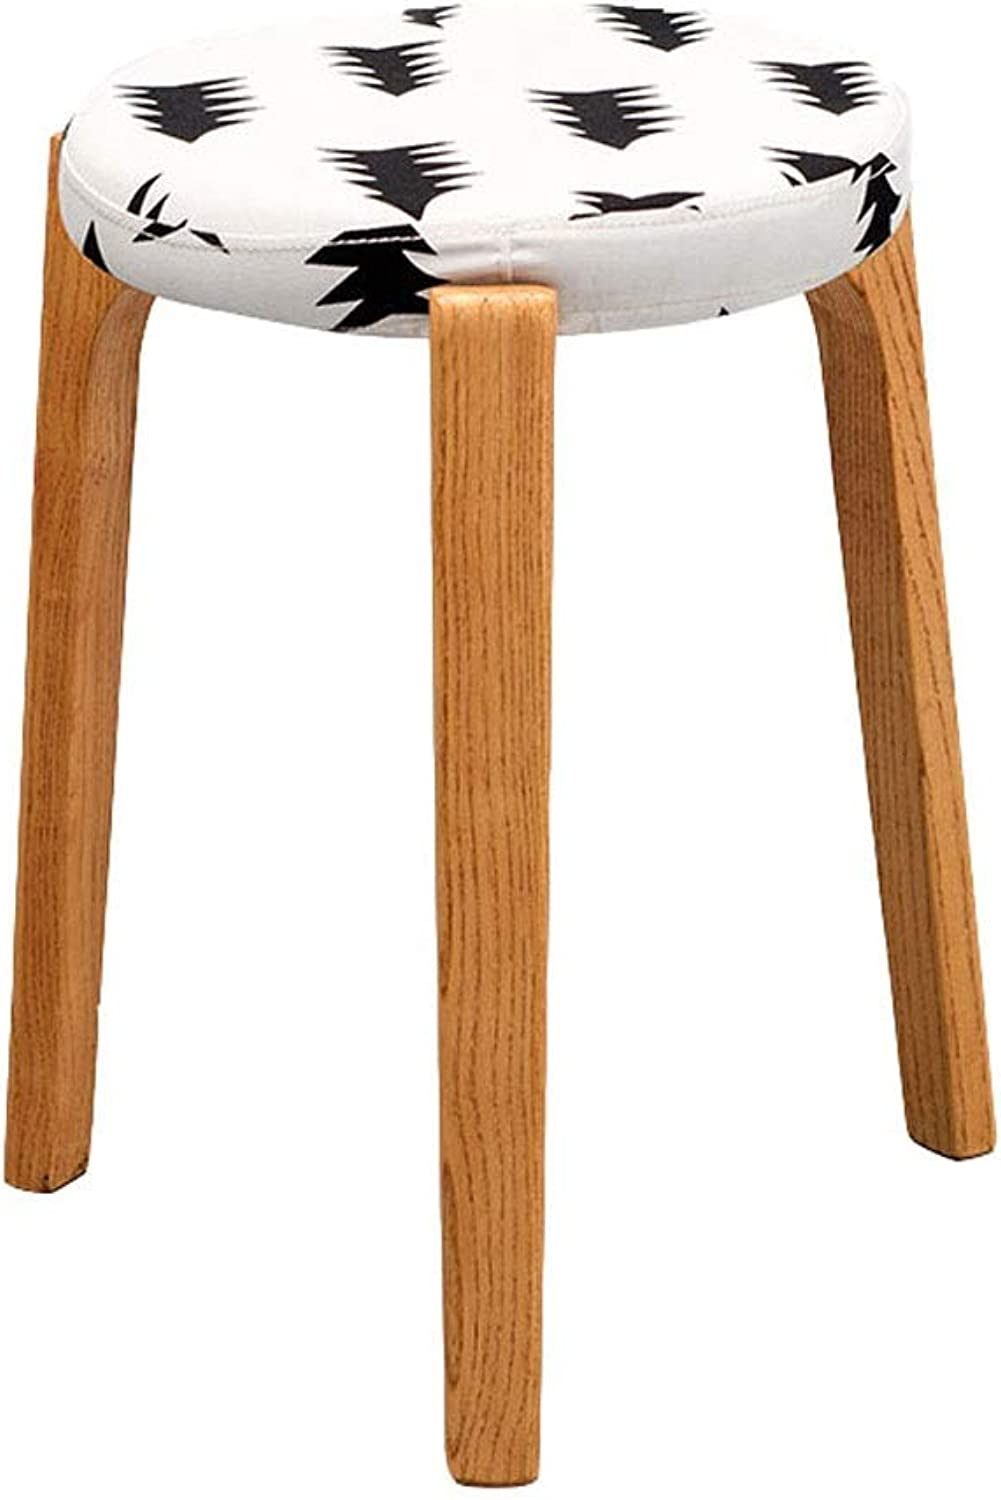 Footstools Solid Wood Stool Chair Black Small Tree Pattern On White Round Three Leg Log Support Dining Stool Dressing Bench (color   A)